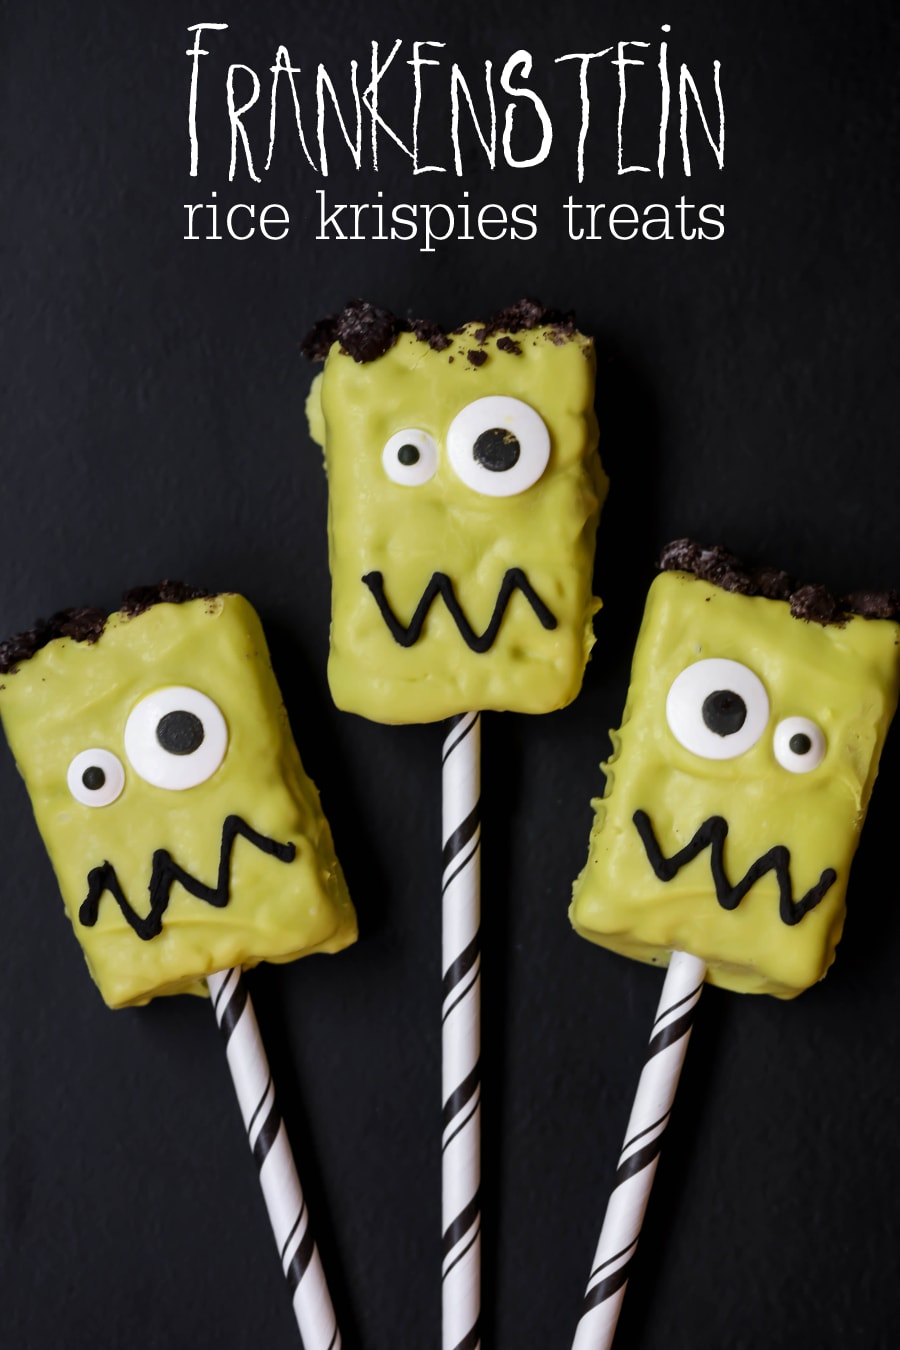 frankenstein rice krispies treats fun festive and adorable treats perfect for halloween parties and